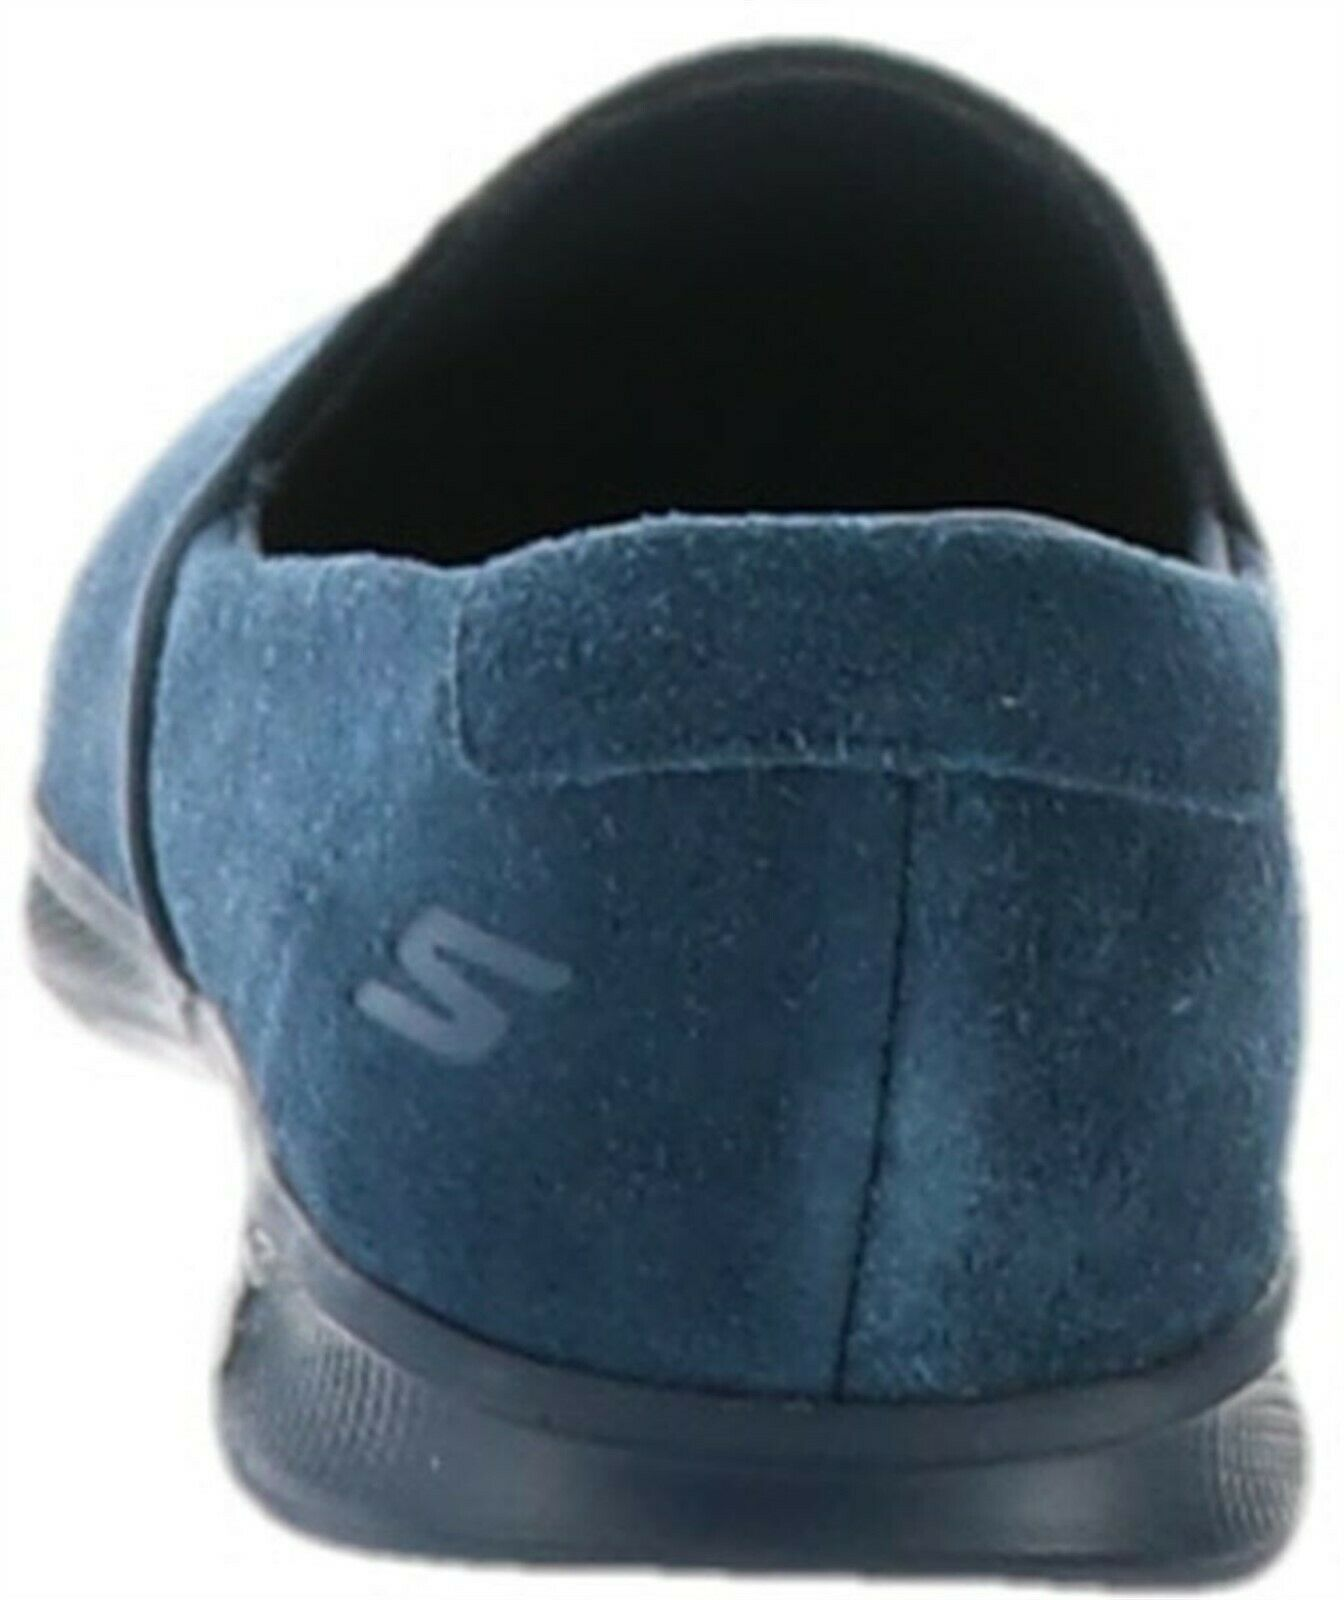 Skechers Womens Go Step Lite Delight Sneaker Navy 8.5M NEW A309486 image 2